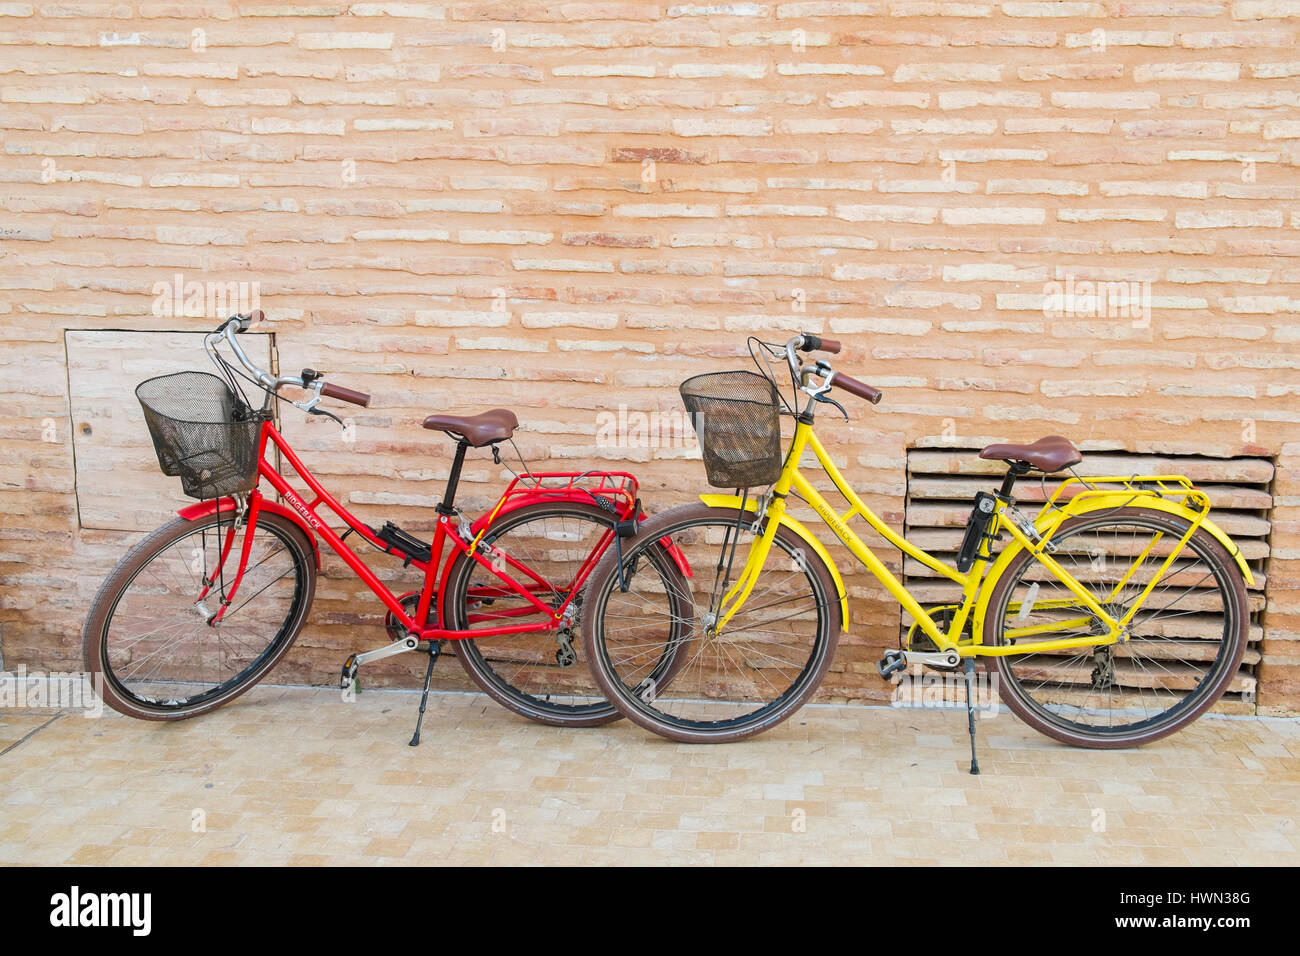 Bicycles parked in Málaga, Andalusia, Spain - Stock Image